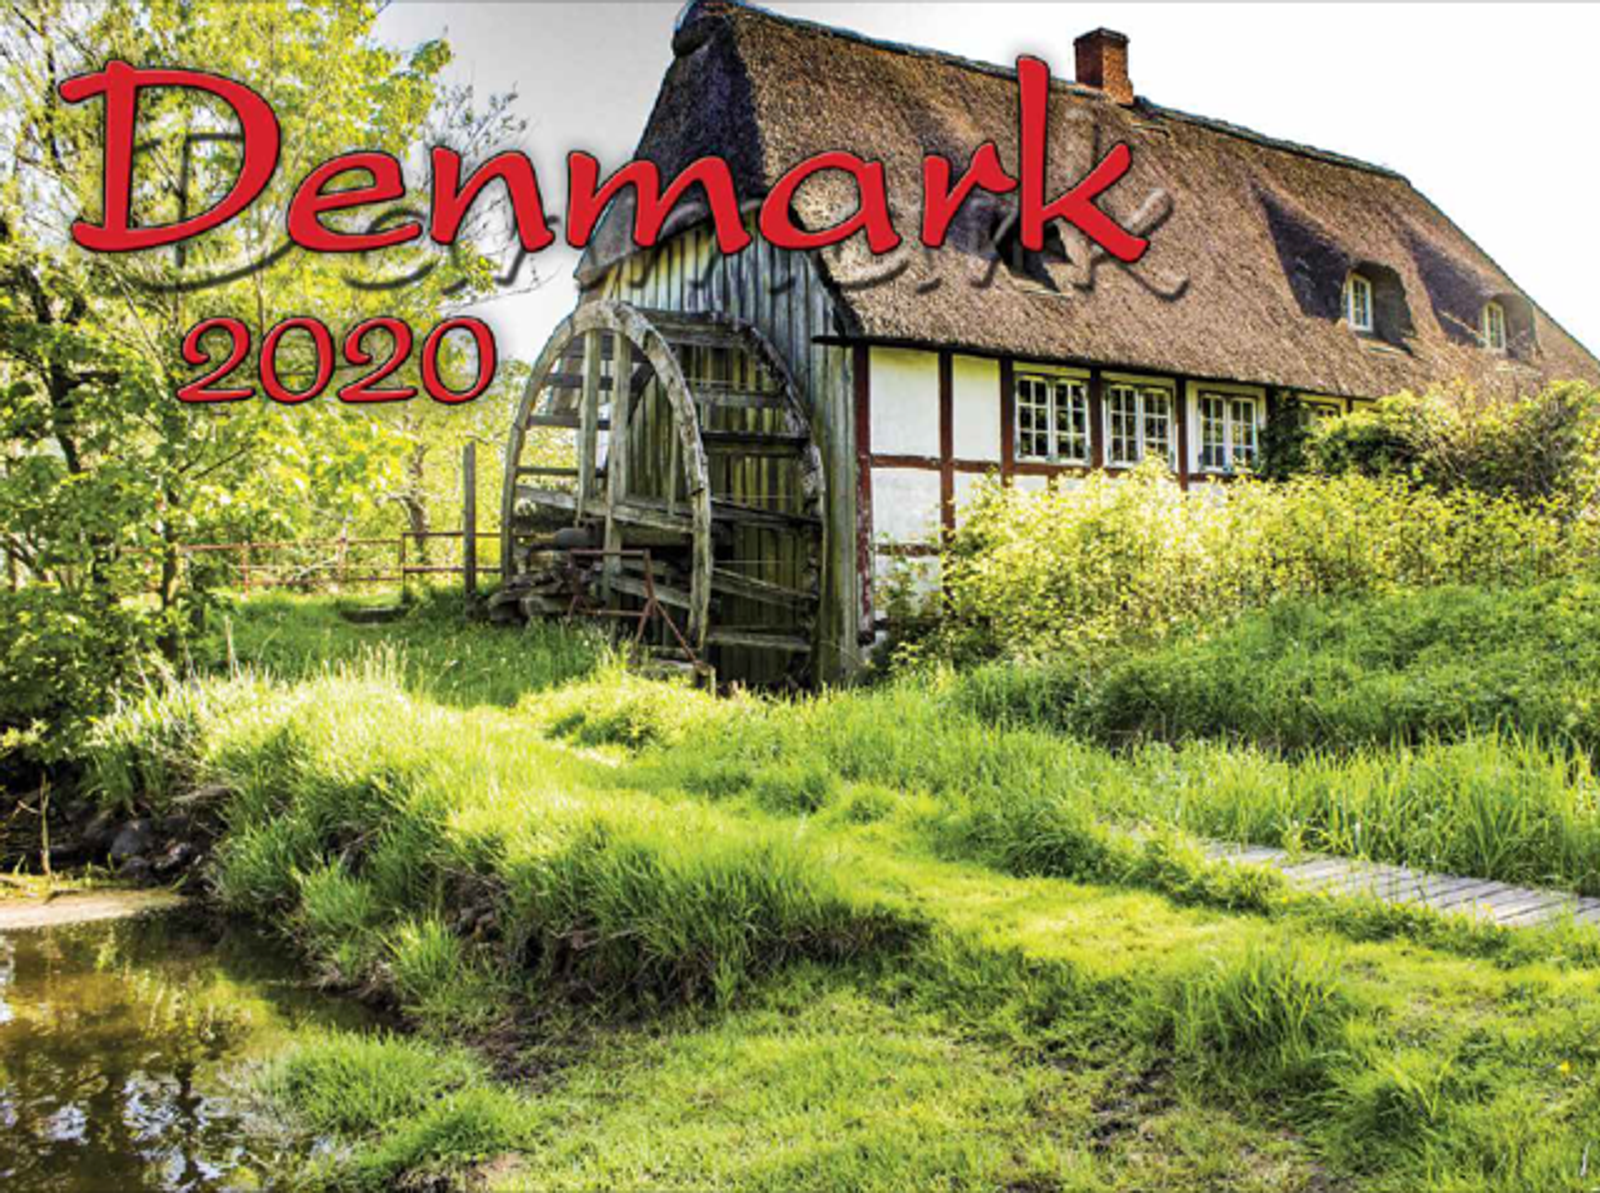 2020 Denmark Calendar in Photographs - Nordiskal